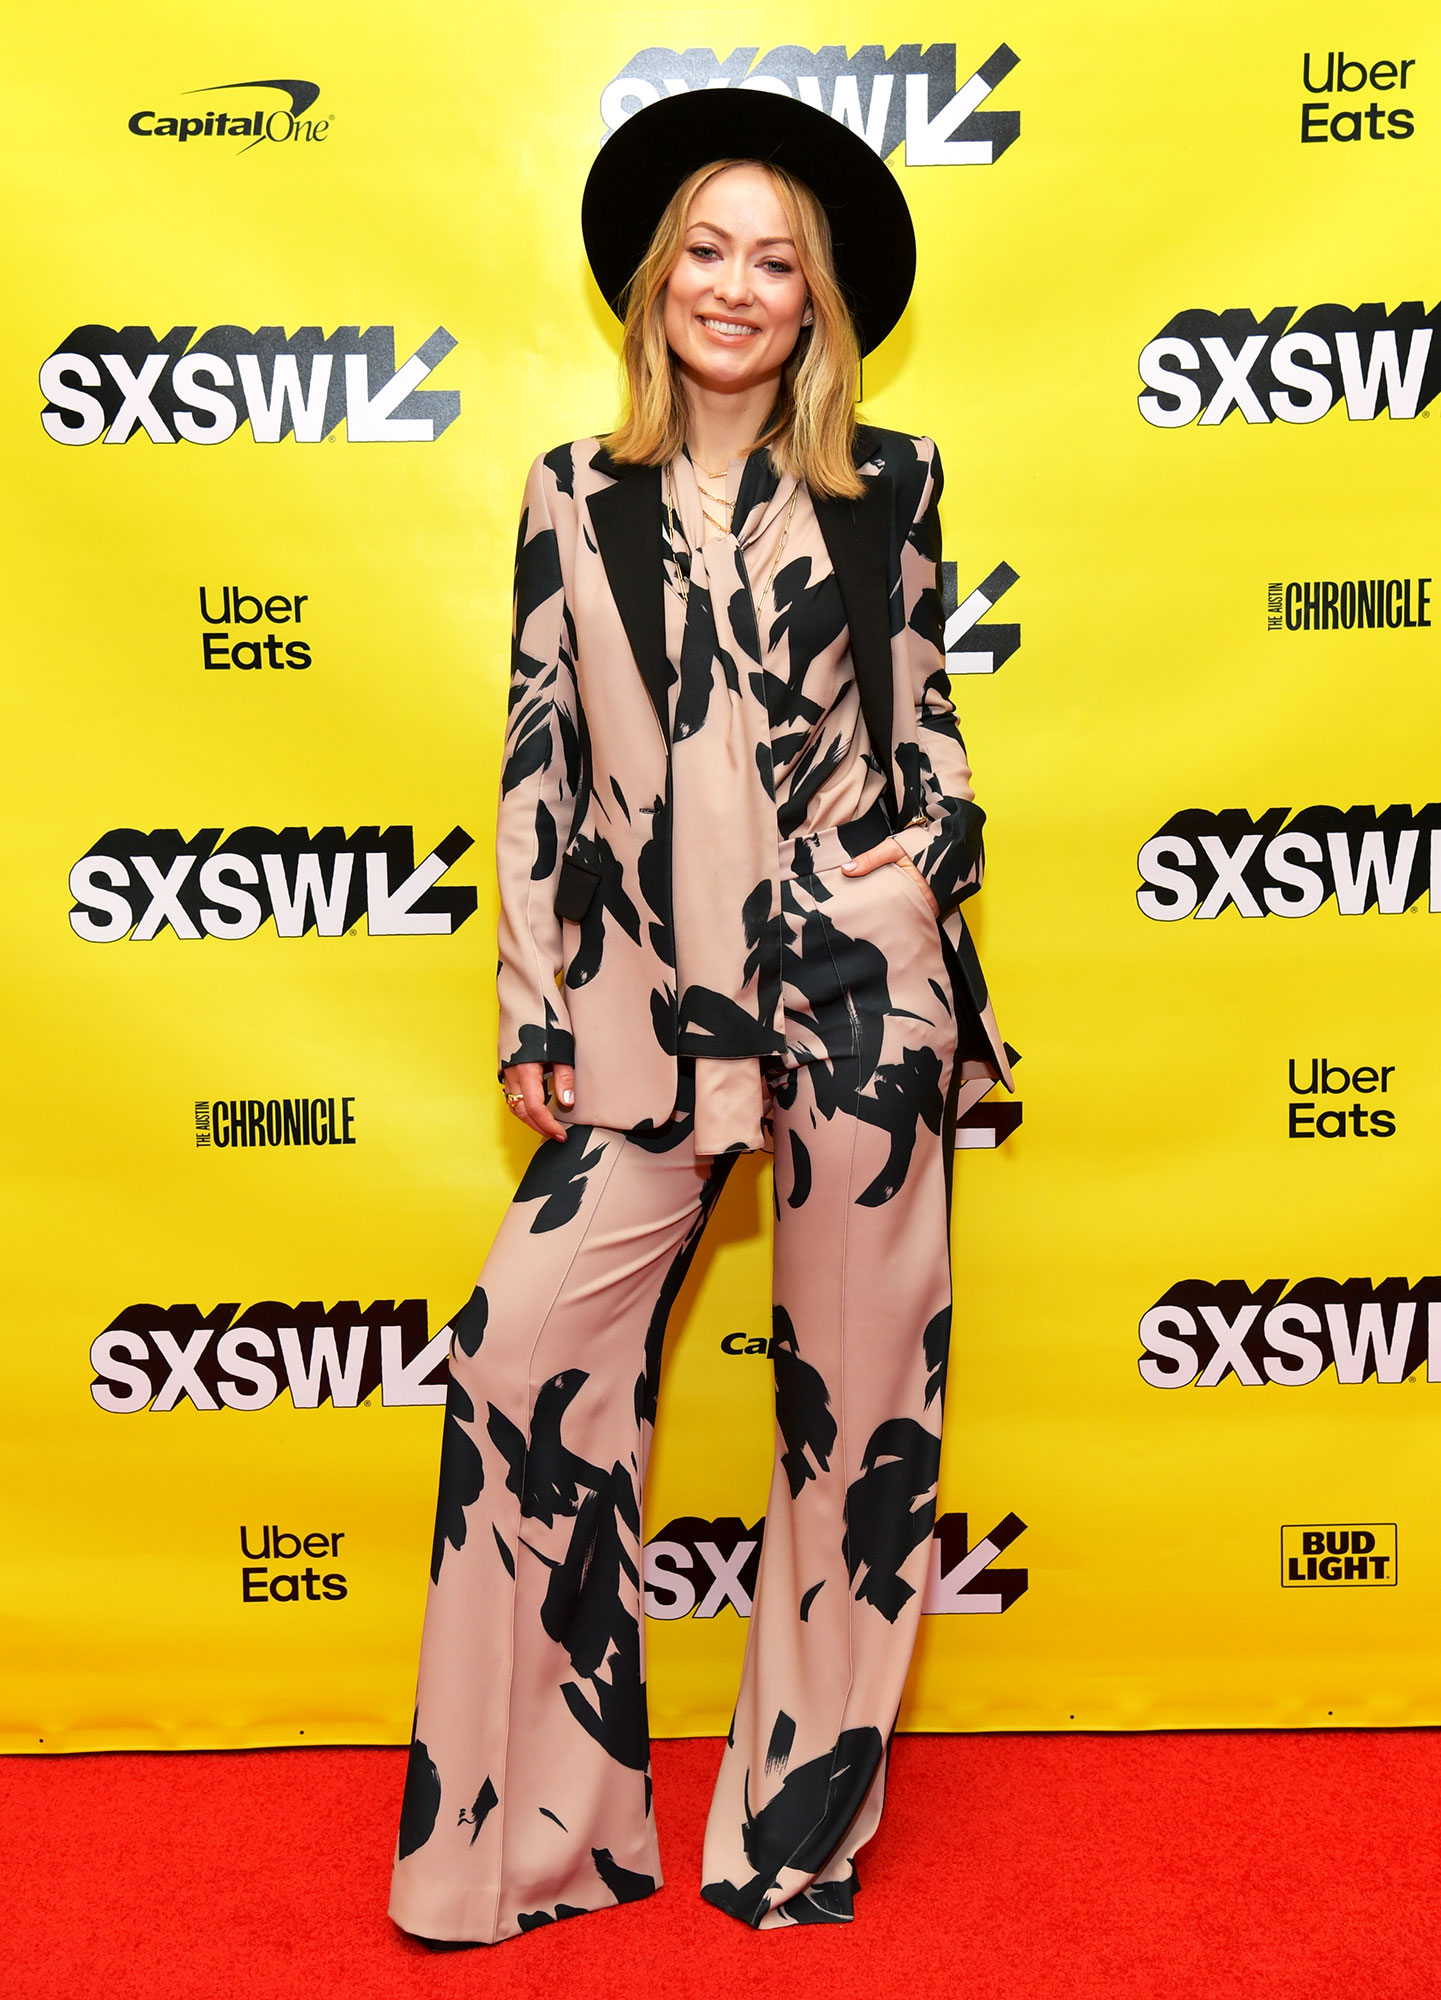 Olivia Wilde SXSW Is Giving Us Chic Outfit Inspo for Spring - Olivia Wilde speaks onstage at Film Keynote: Olivia Wilde during the 2019 SXSW Conference and Festivals at Austin Convention Center on March 11, 2019 in Austin, Texas.